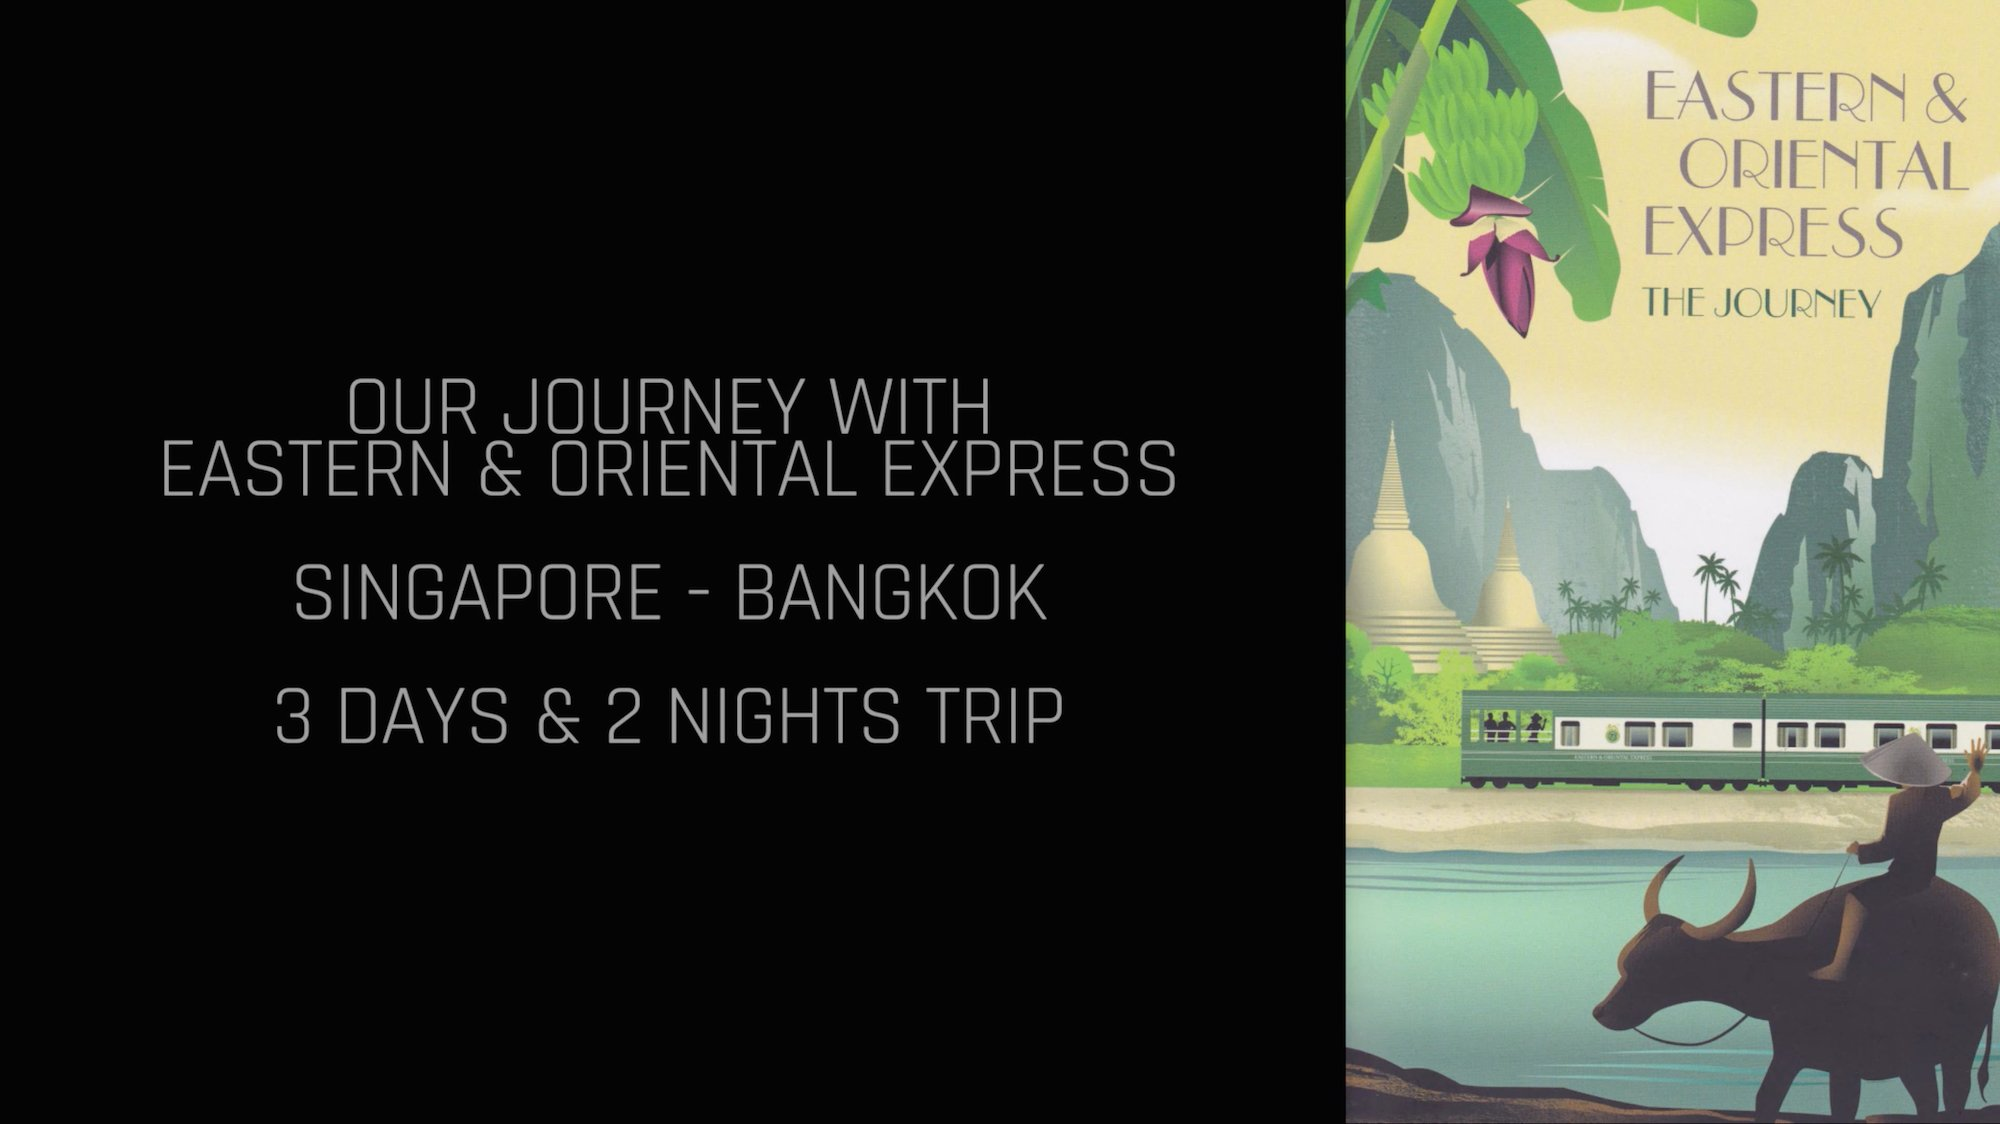 Eastern & Oriental Express, e&o express, Train - Belmond - Singapore To Bangkok - Youtube